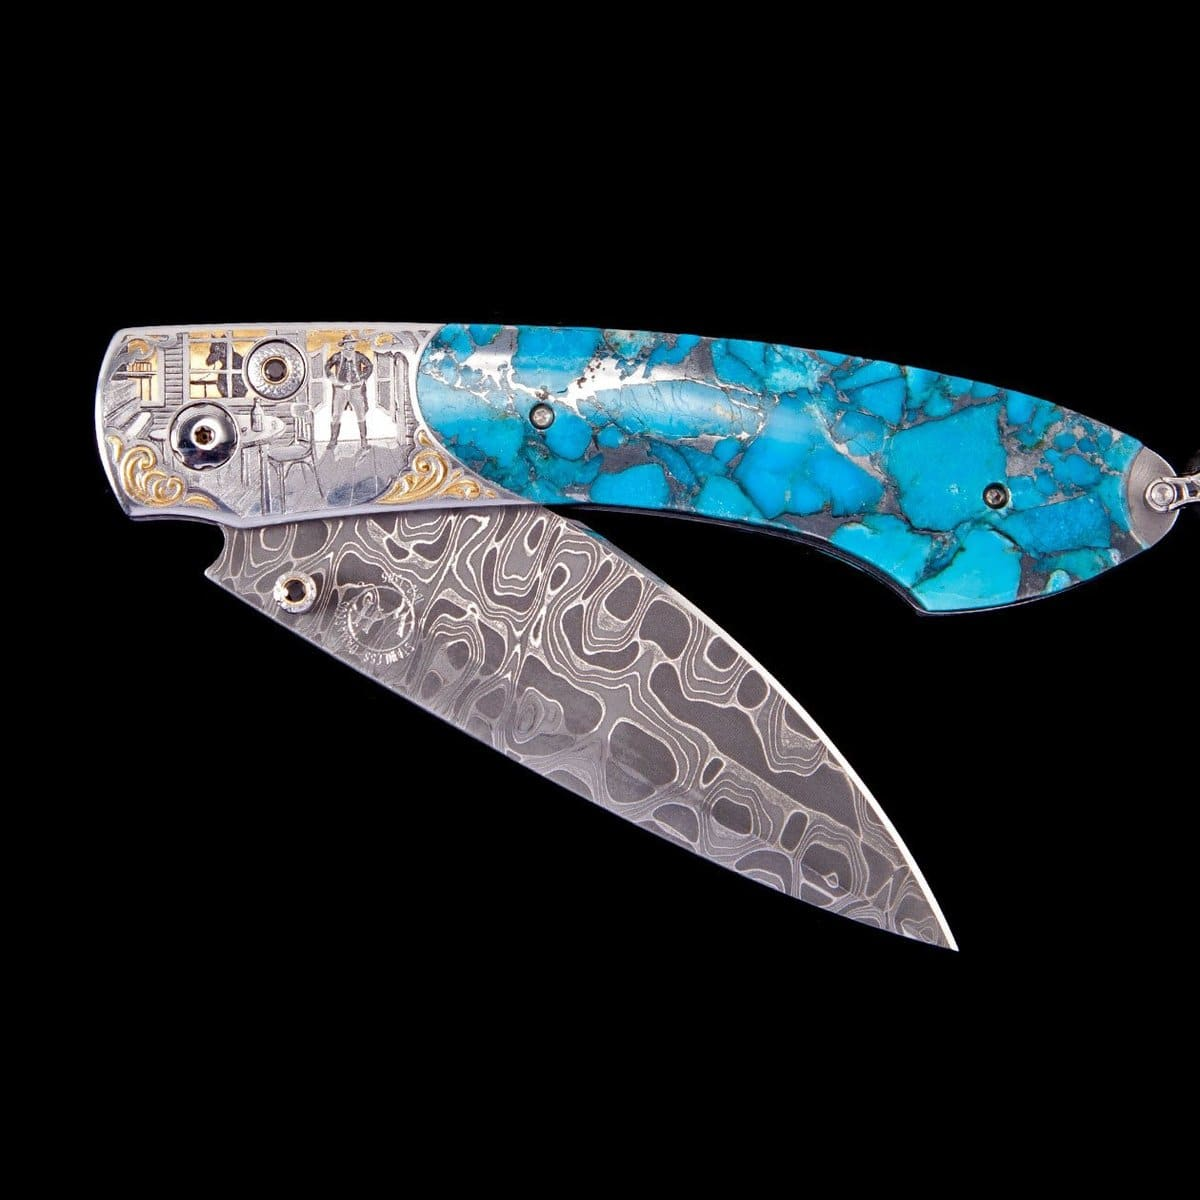 Spearpoint Outlaw II Limited Edition Knife - B12 OUTLAW II-William Henry-Renee Taylor Gallery